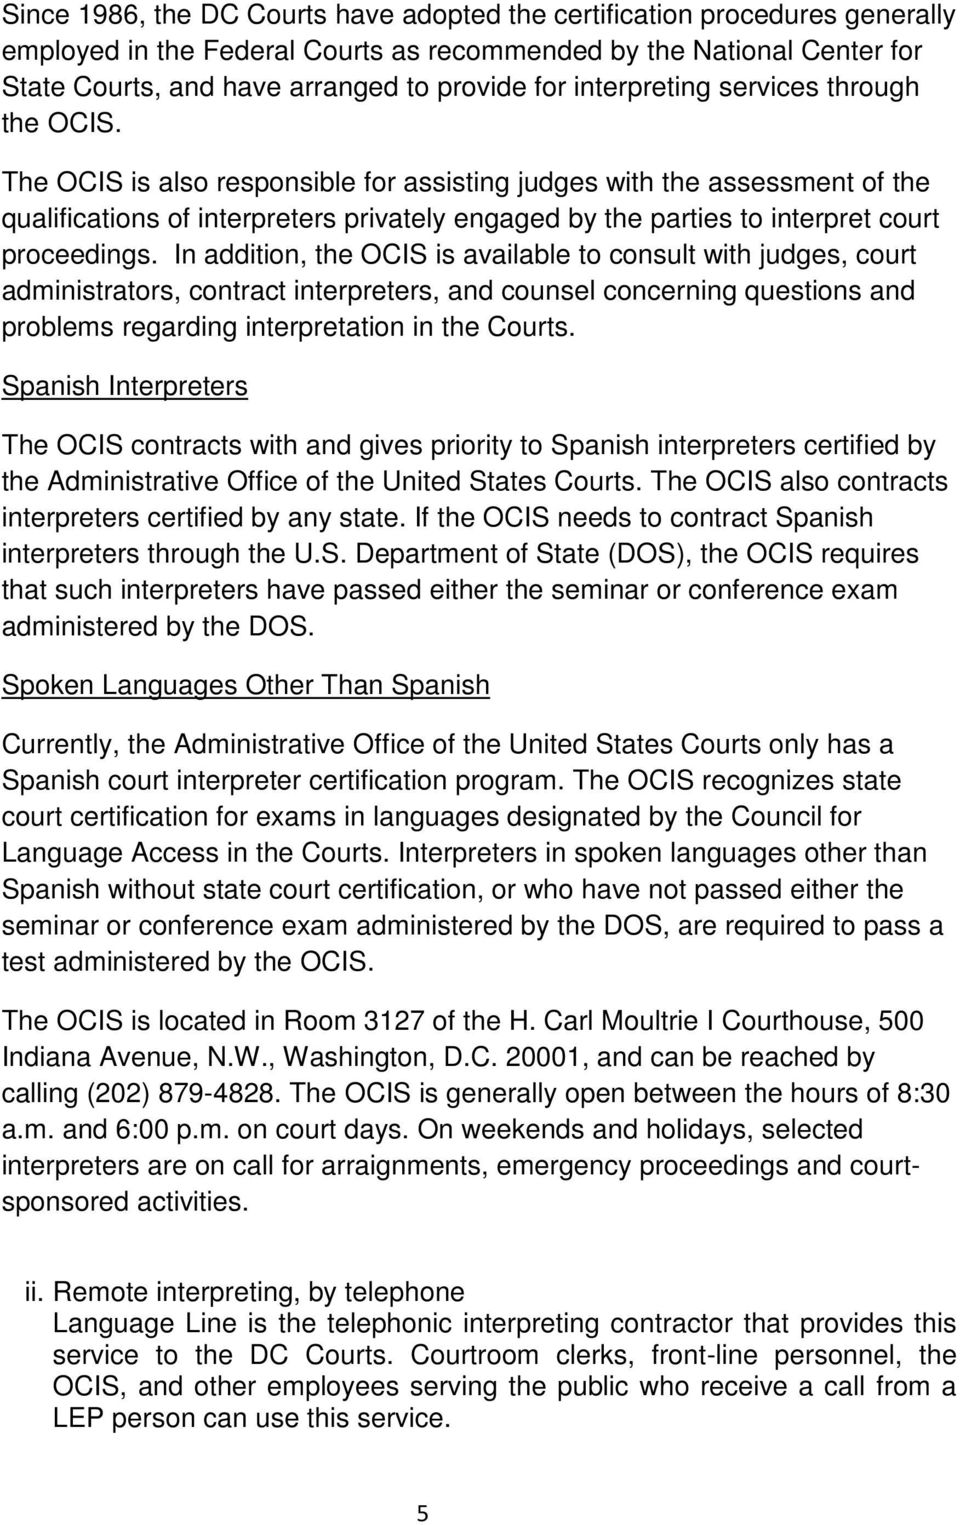 The OCIS is also responsible for assisting judges with the assessment of the qualifications of interpreters privately engaged by the parties to interpret court proceedings.